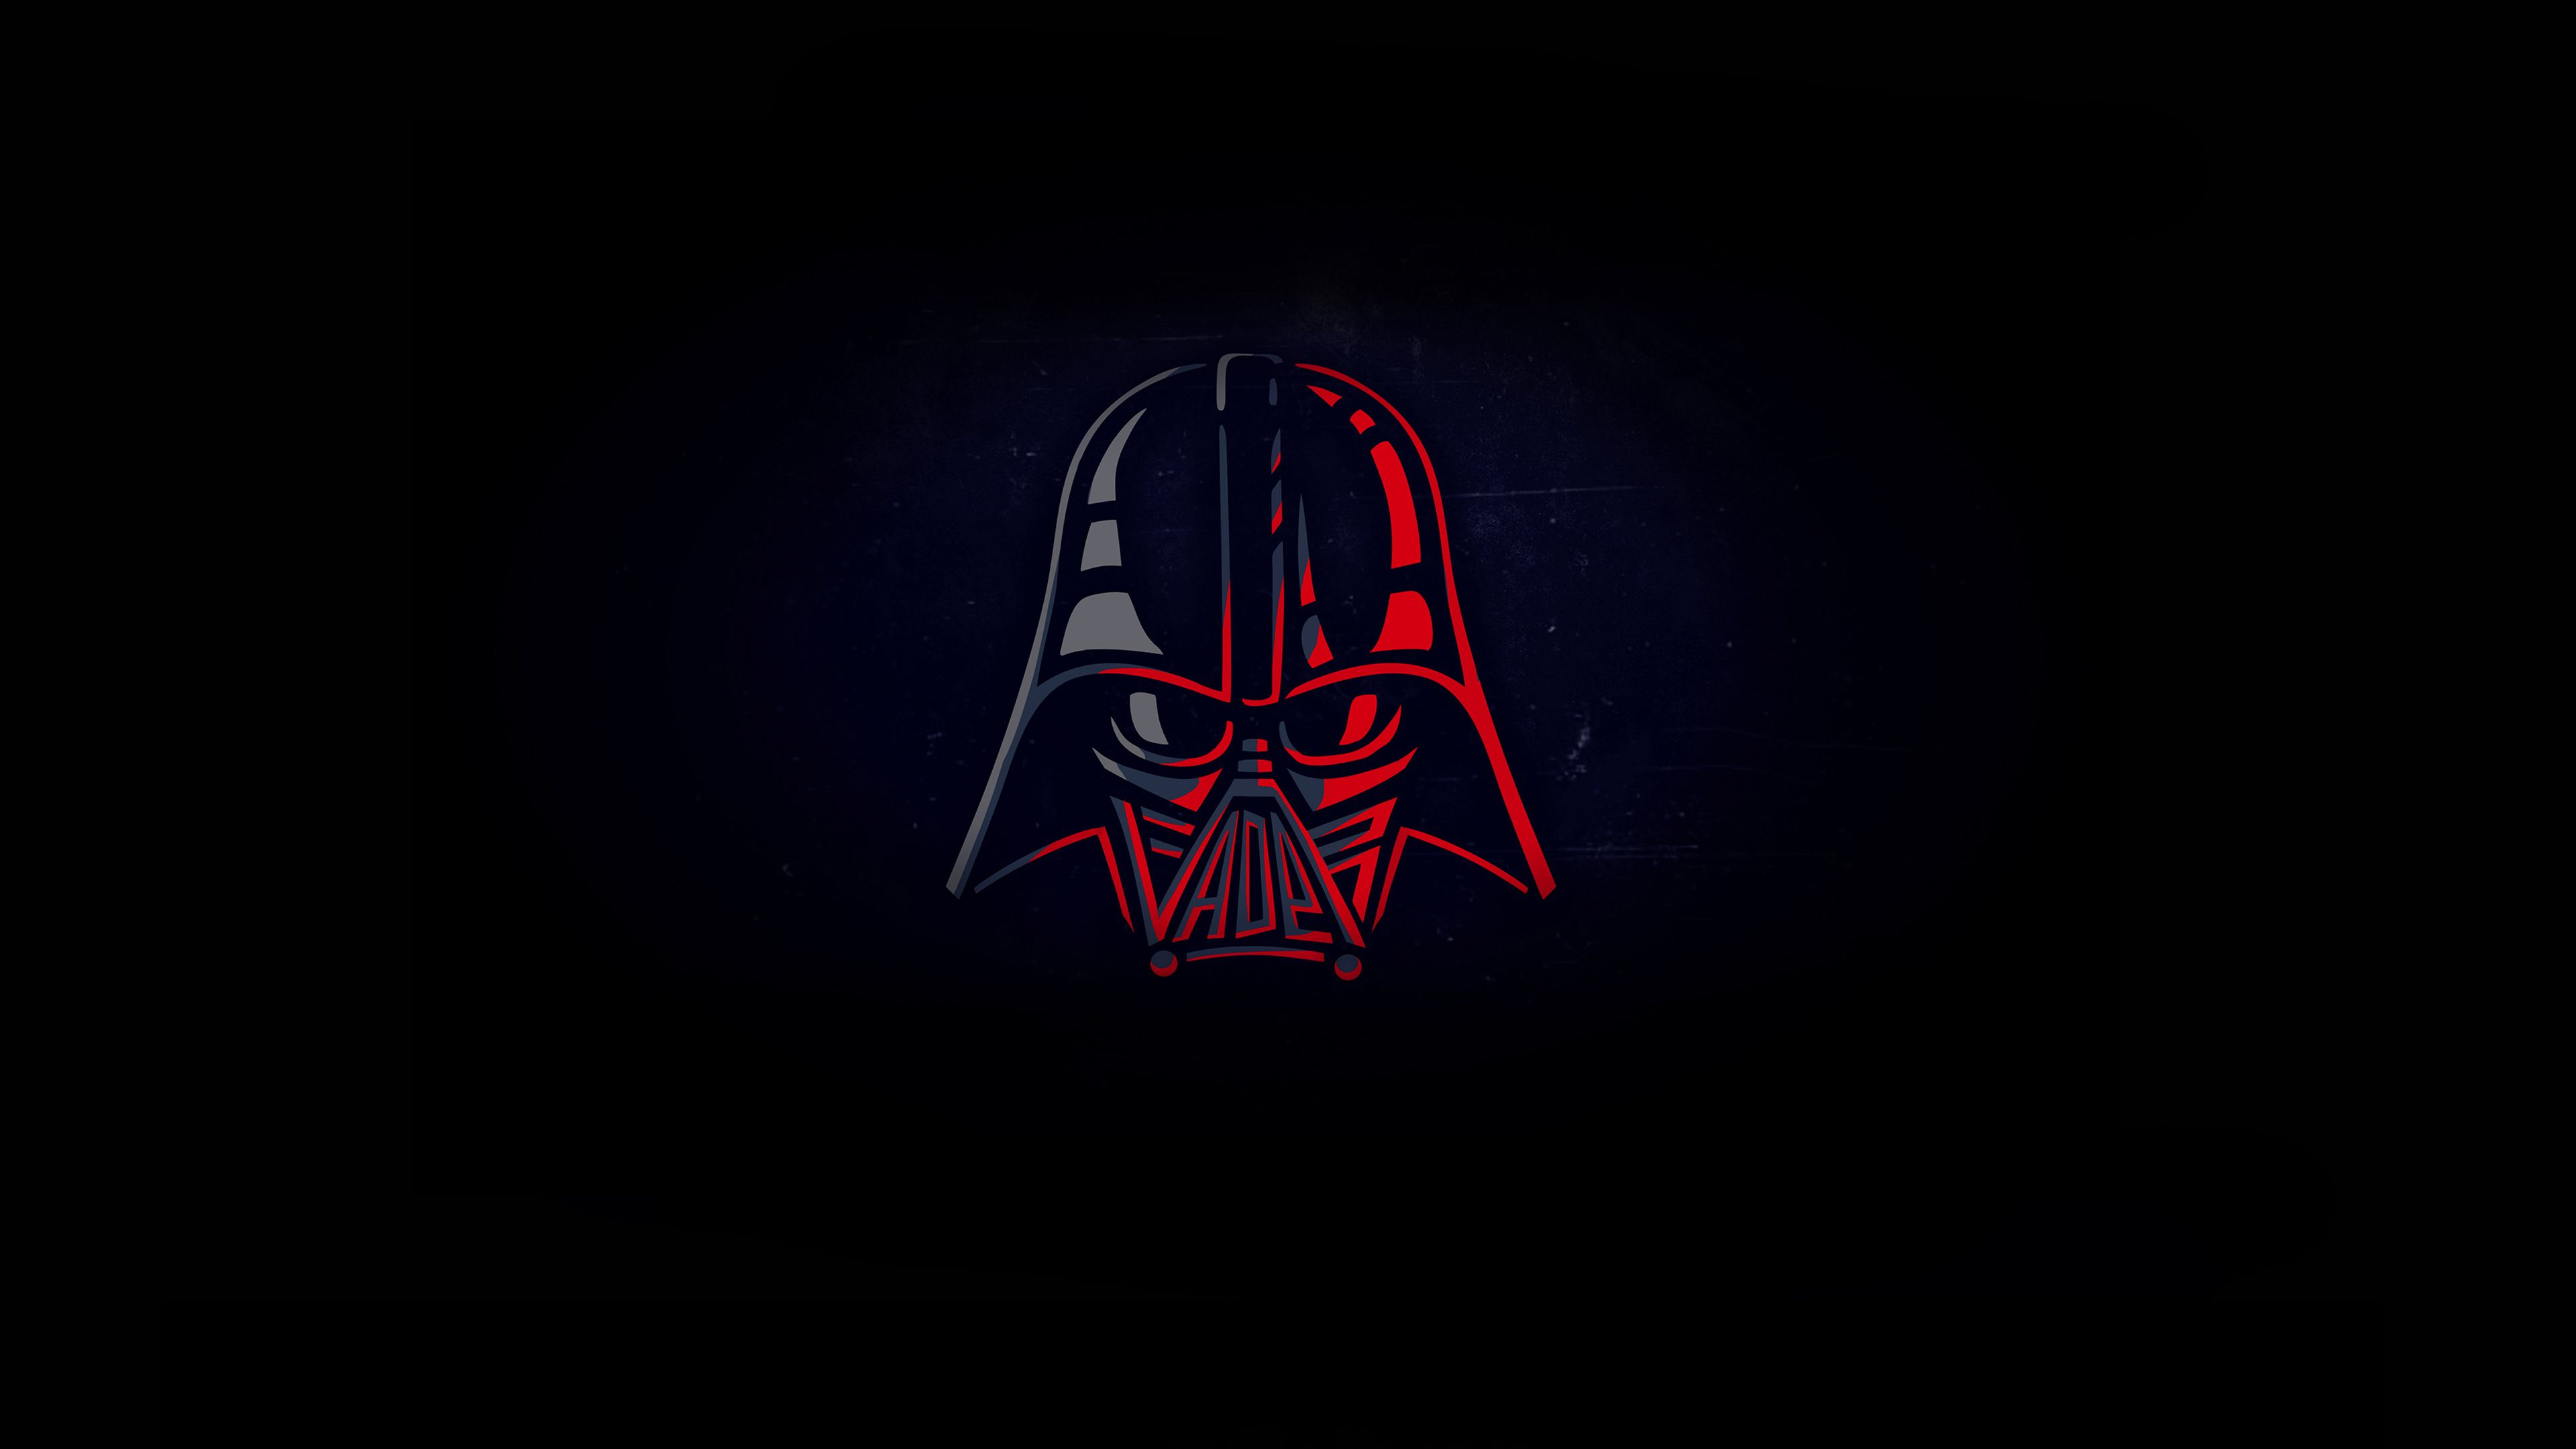 Wallpapers Hd Star Wars Posted By Michelle Tremblay